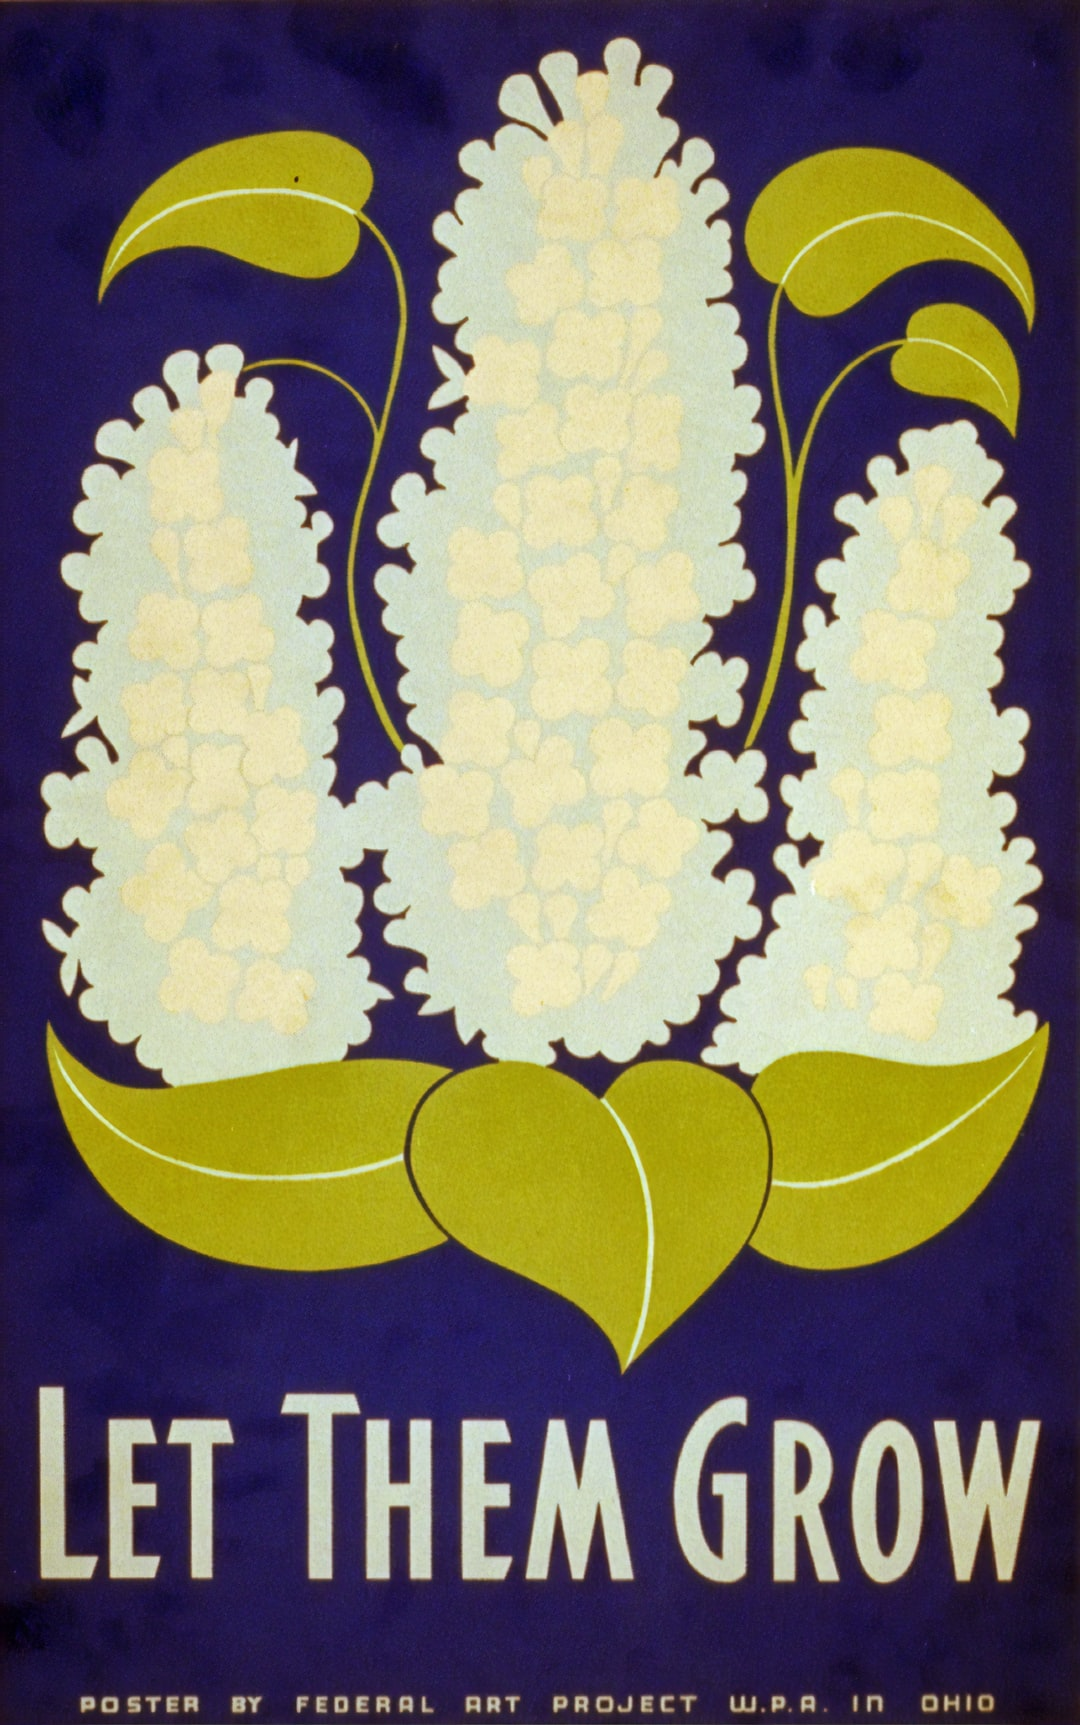 Let them grow. Poster by artist Stanley Thomas Clough for the Ohio: Federal Arts Project, W.P.A., 1938. From the Work Projects Administration Poster Collection. Library of Congress Prints & Photographs Division.  https://www.loc.gov/item/98517179/